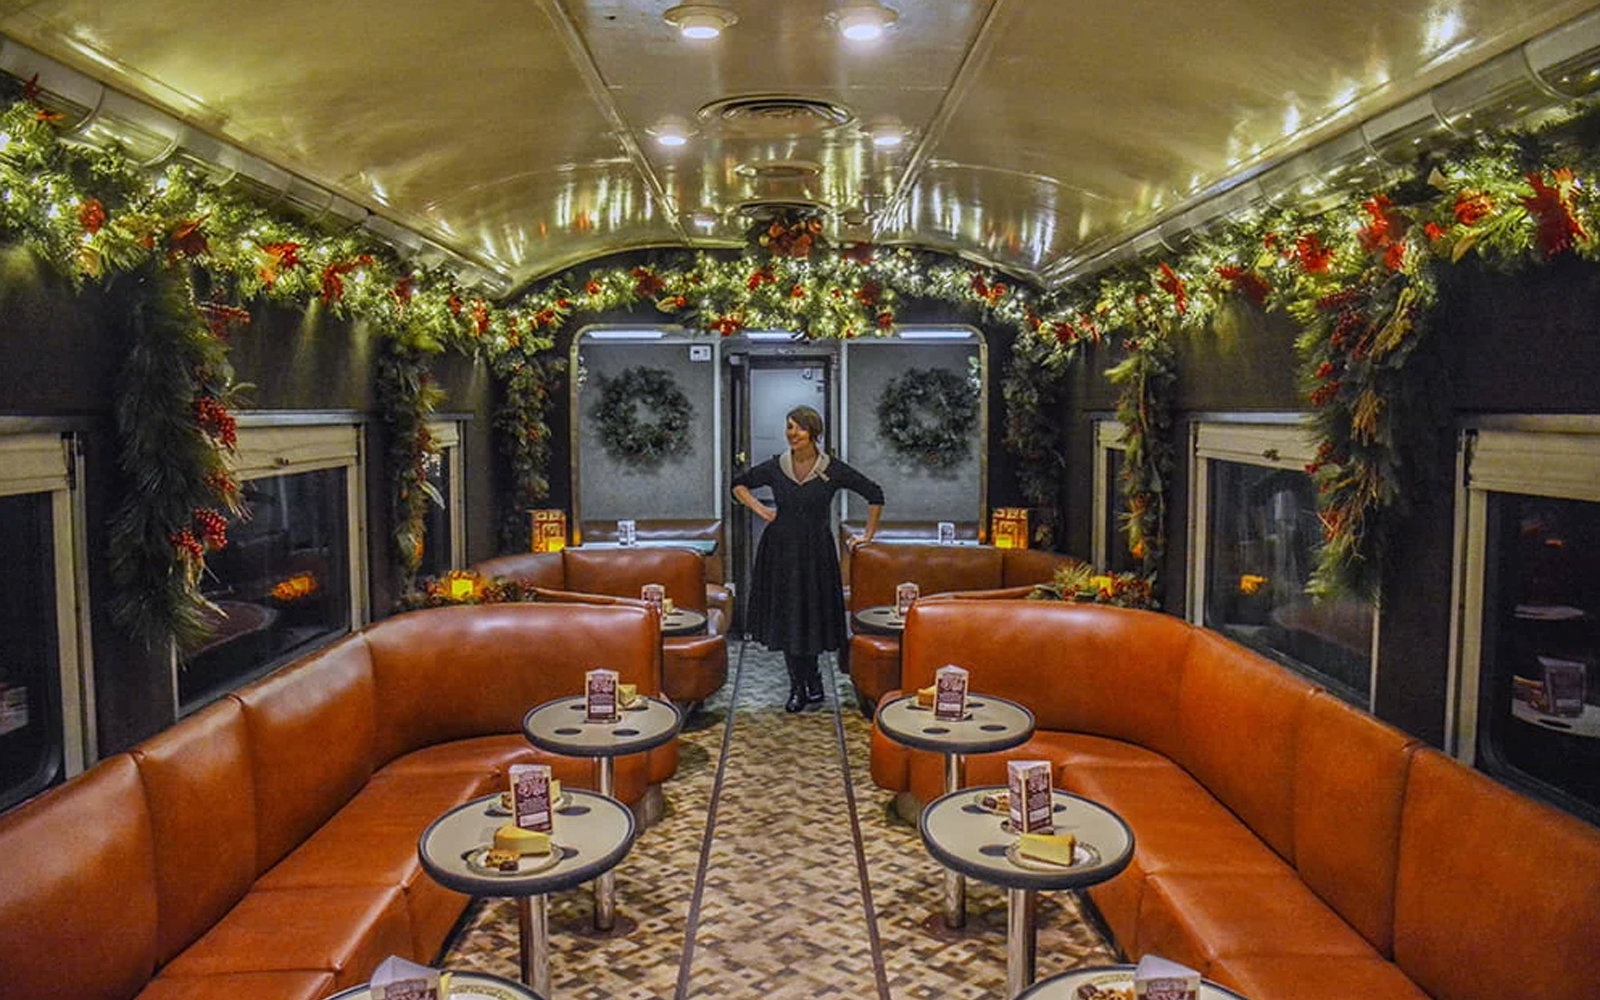 Sip on holiday cocktails and take in Tennessee mountain views on this vintage train ride